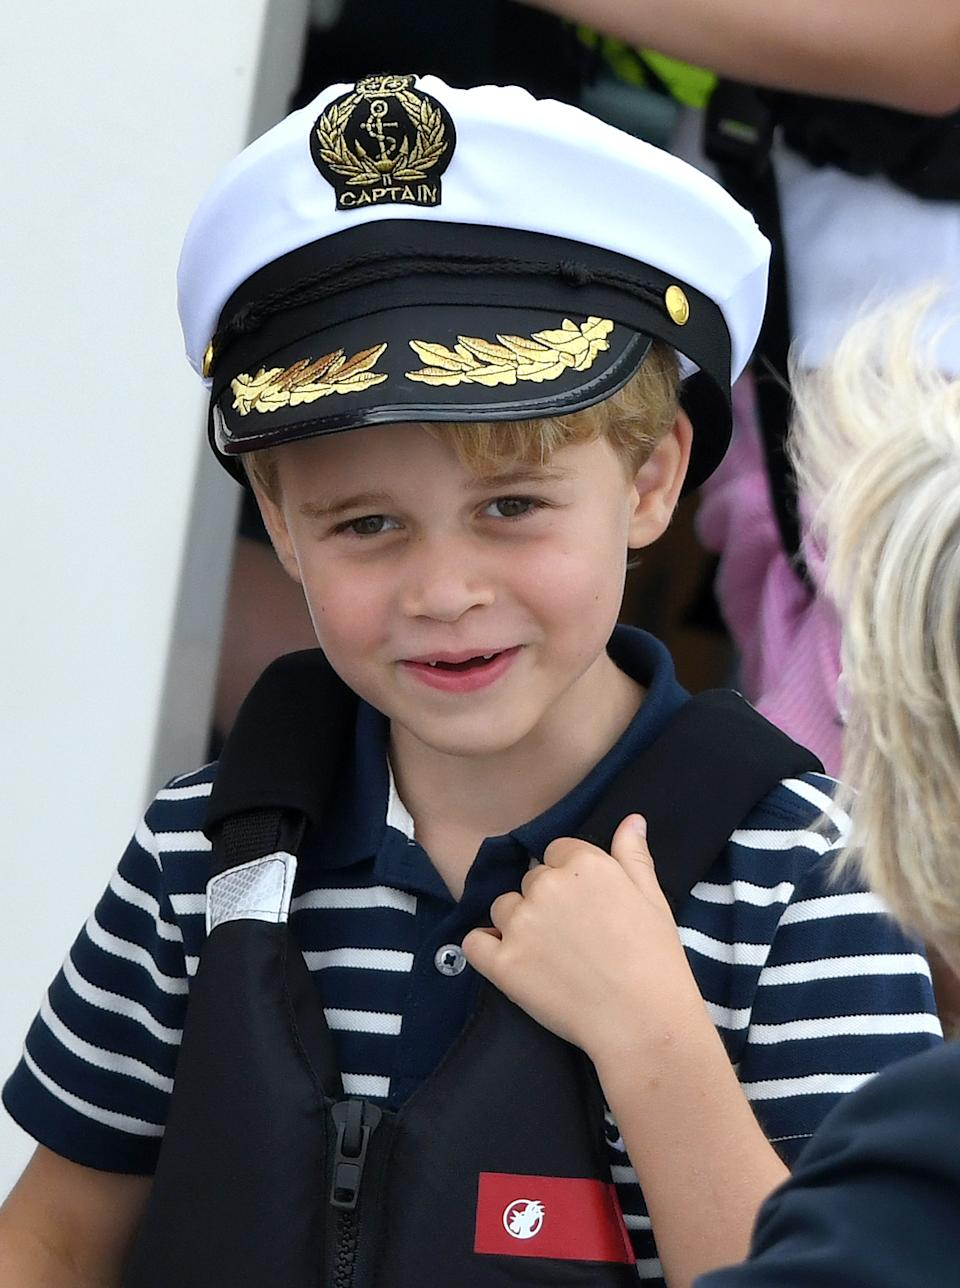 <p>Prince George at the King's Cup Regatta on 8 August 2019 in Cowes. He may have inherited his mother's love for sailing.(Karwai Tang/WireImage)</p>